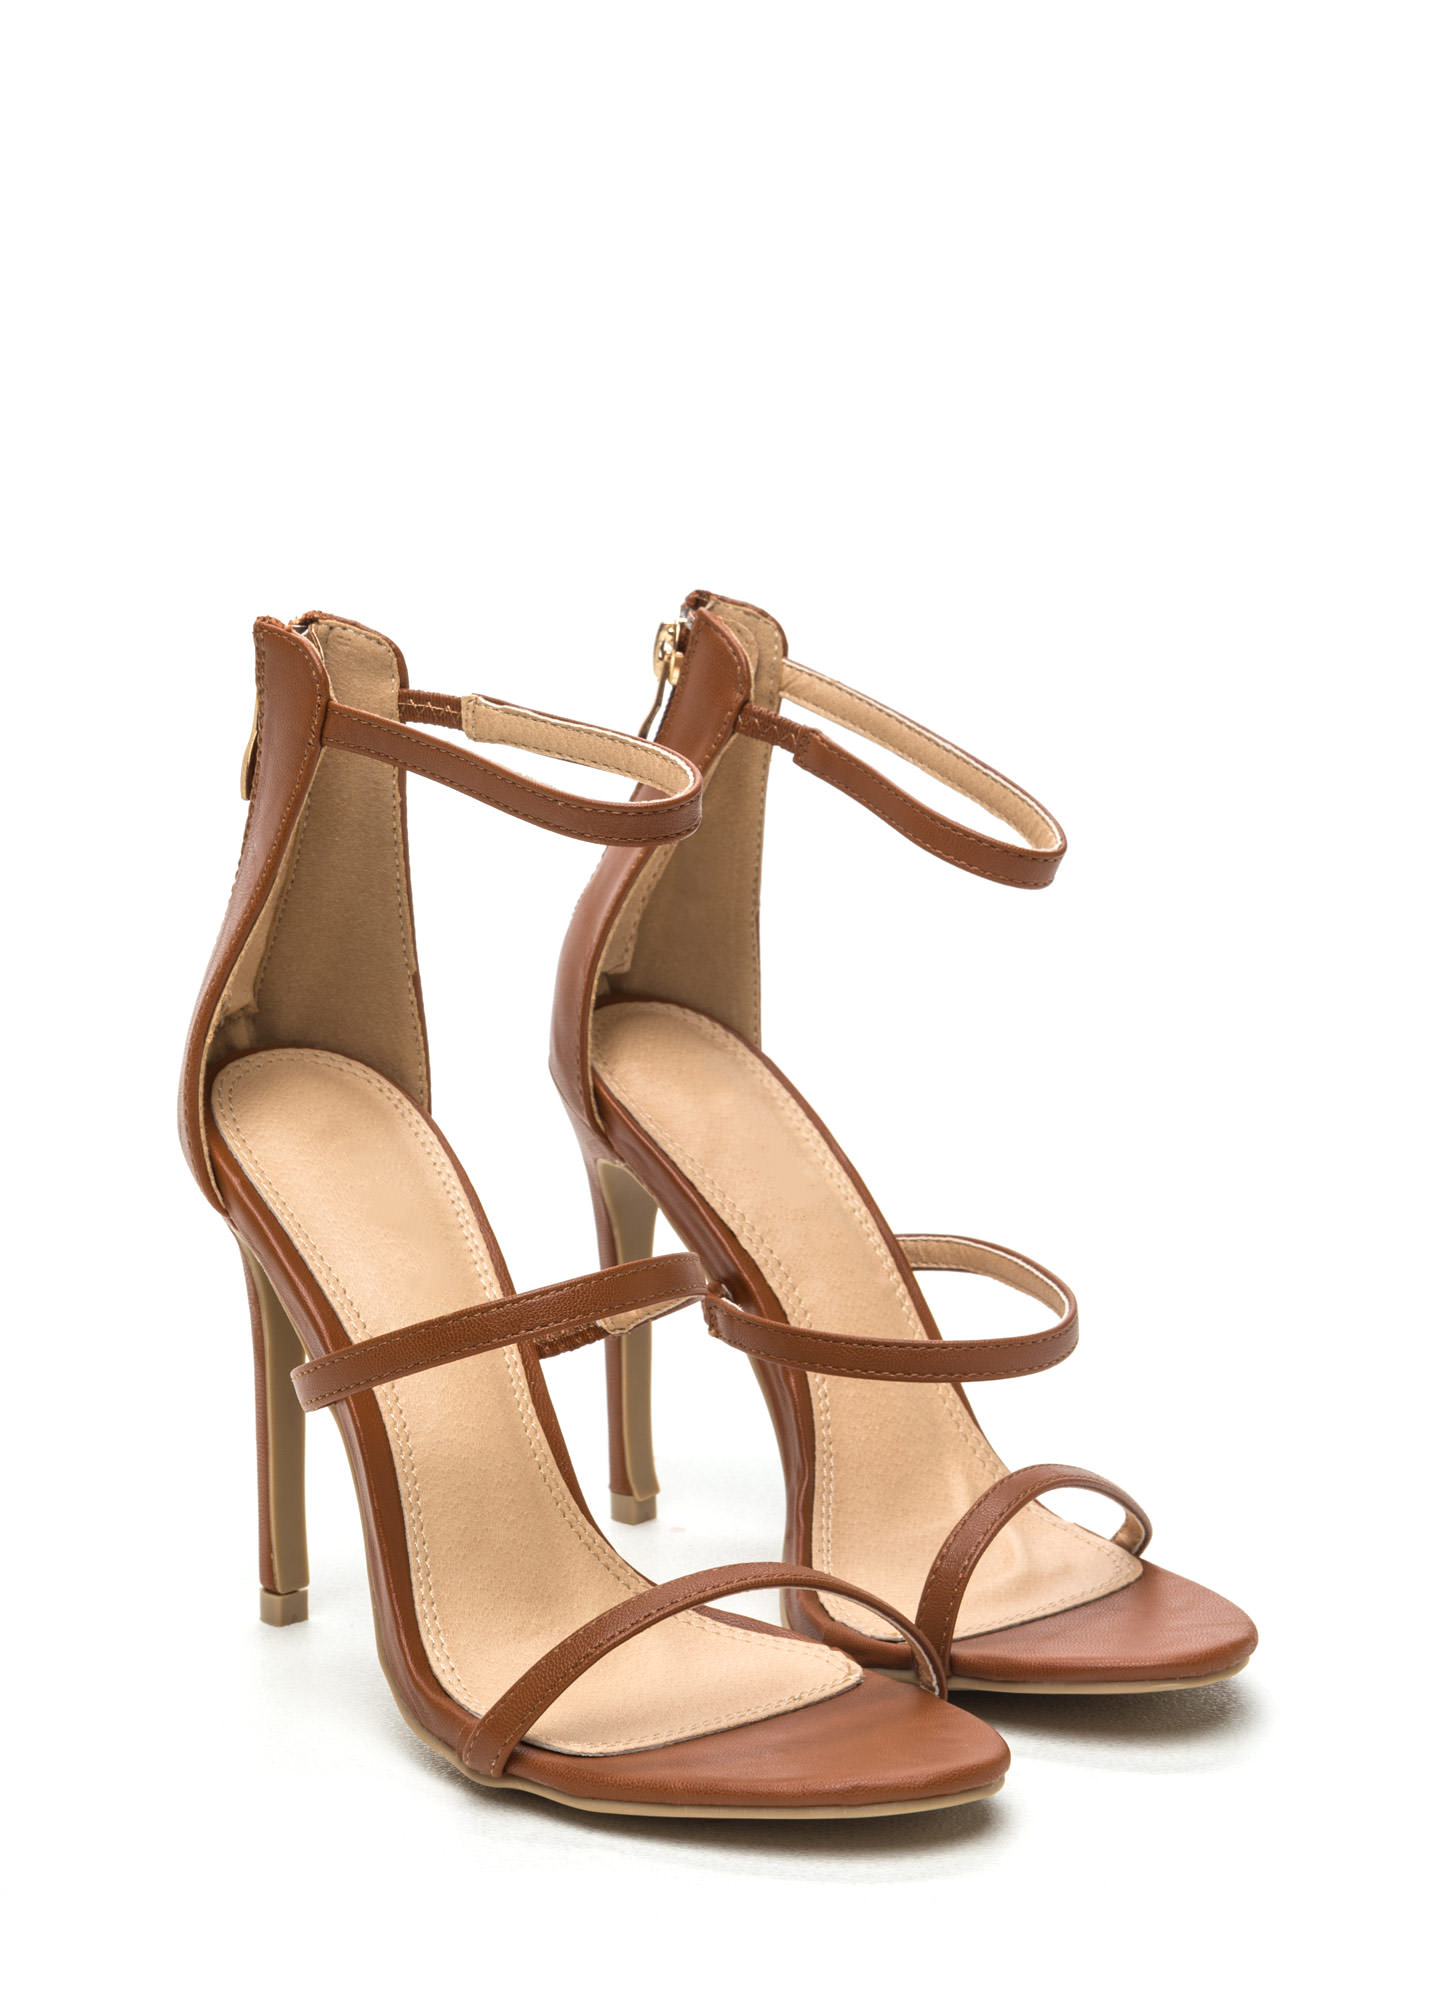 Strappy Life Single-Sole Heels TAN